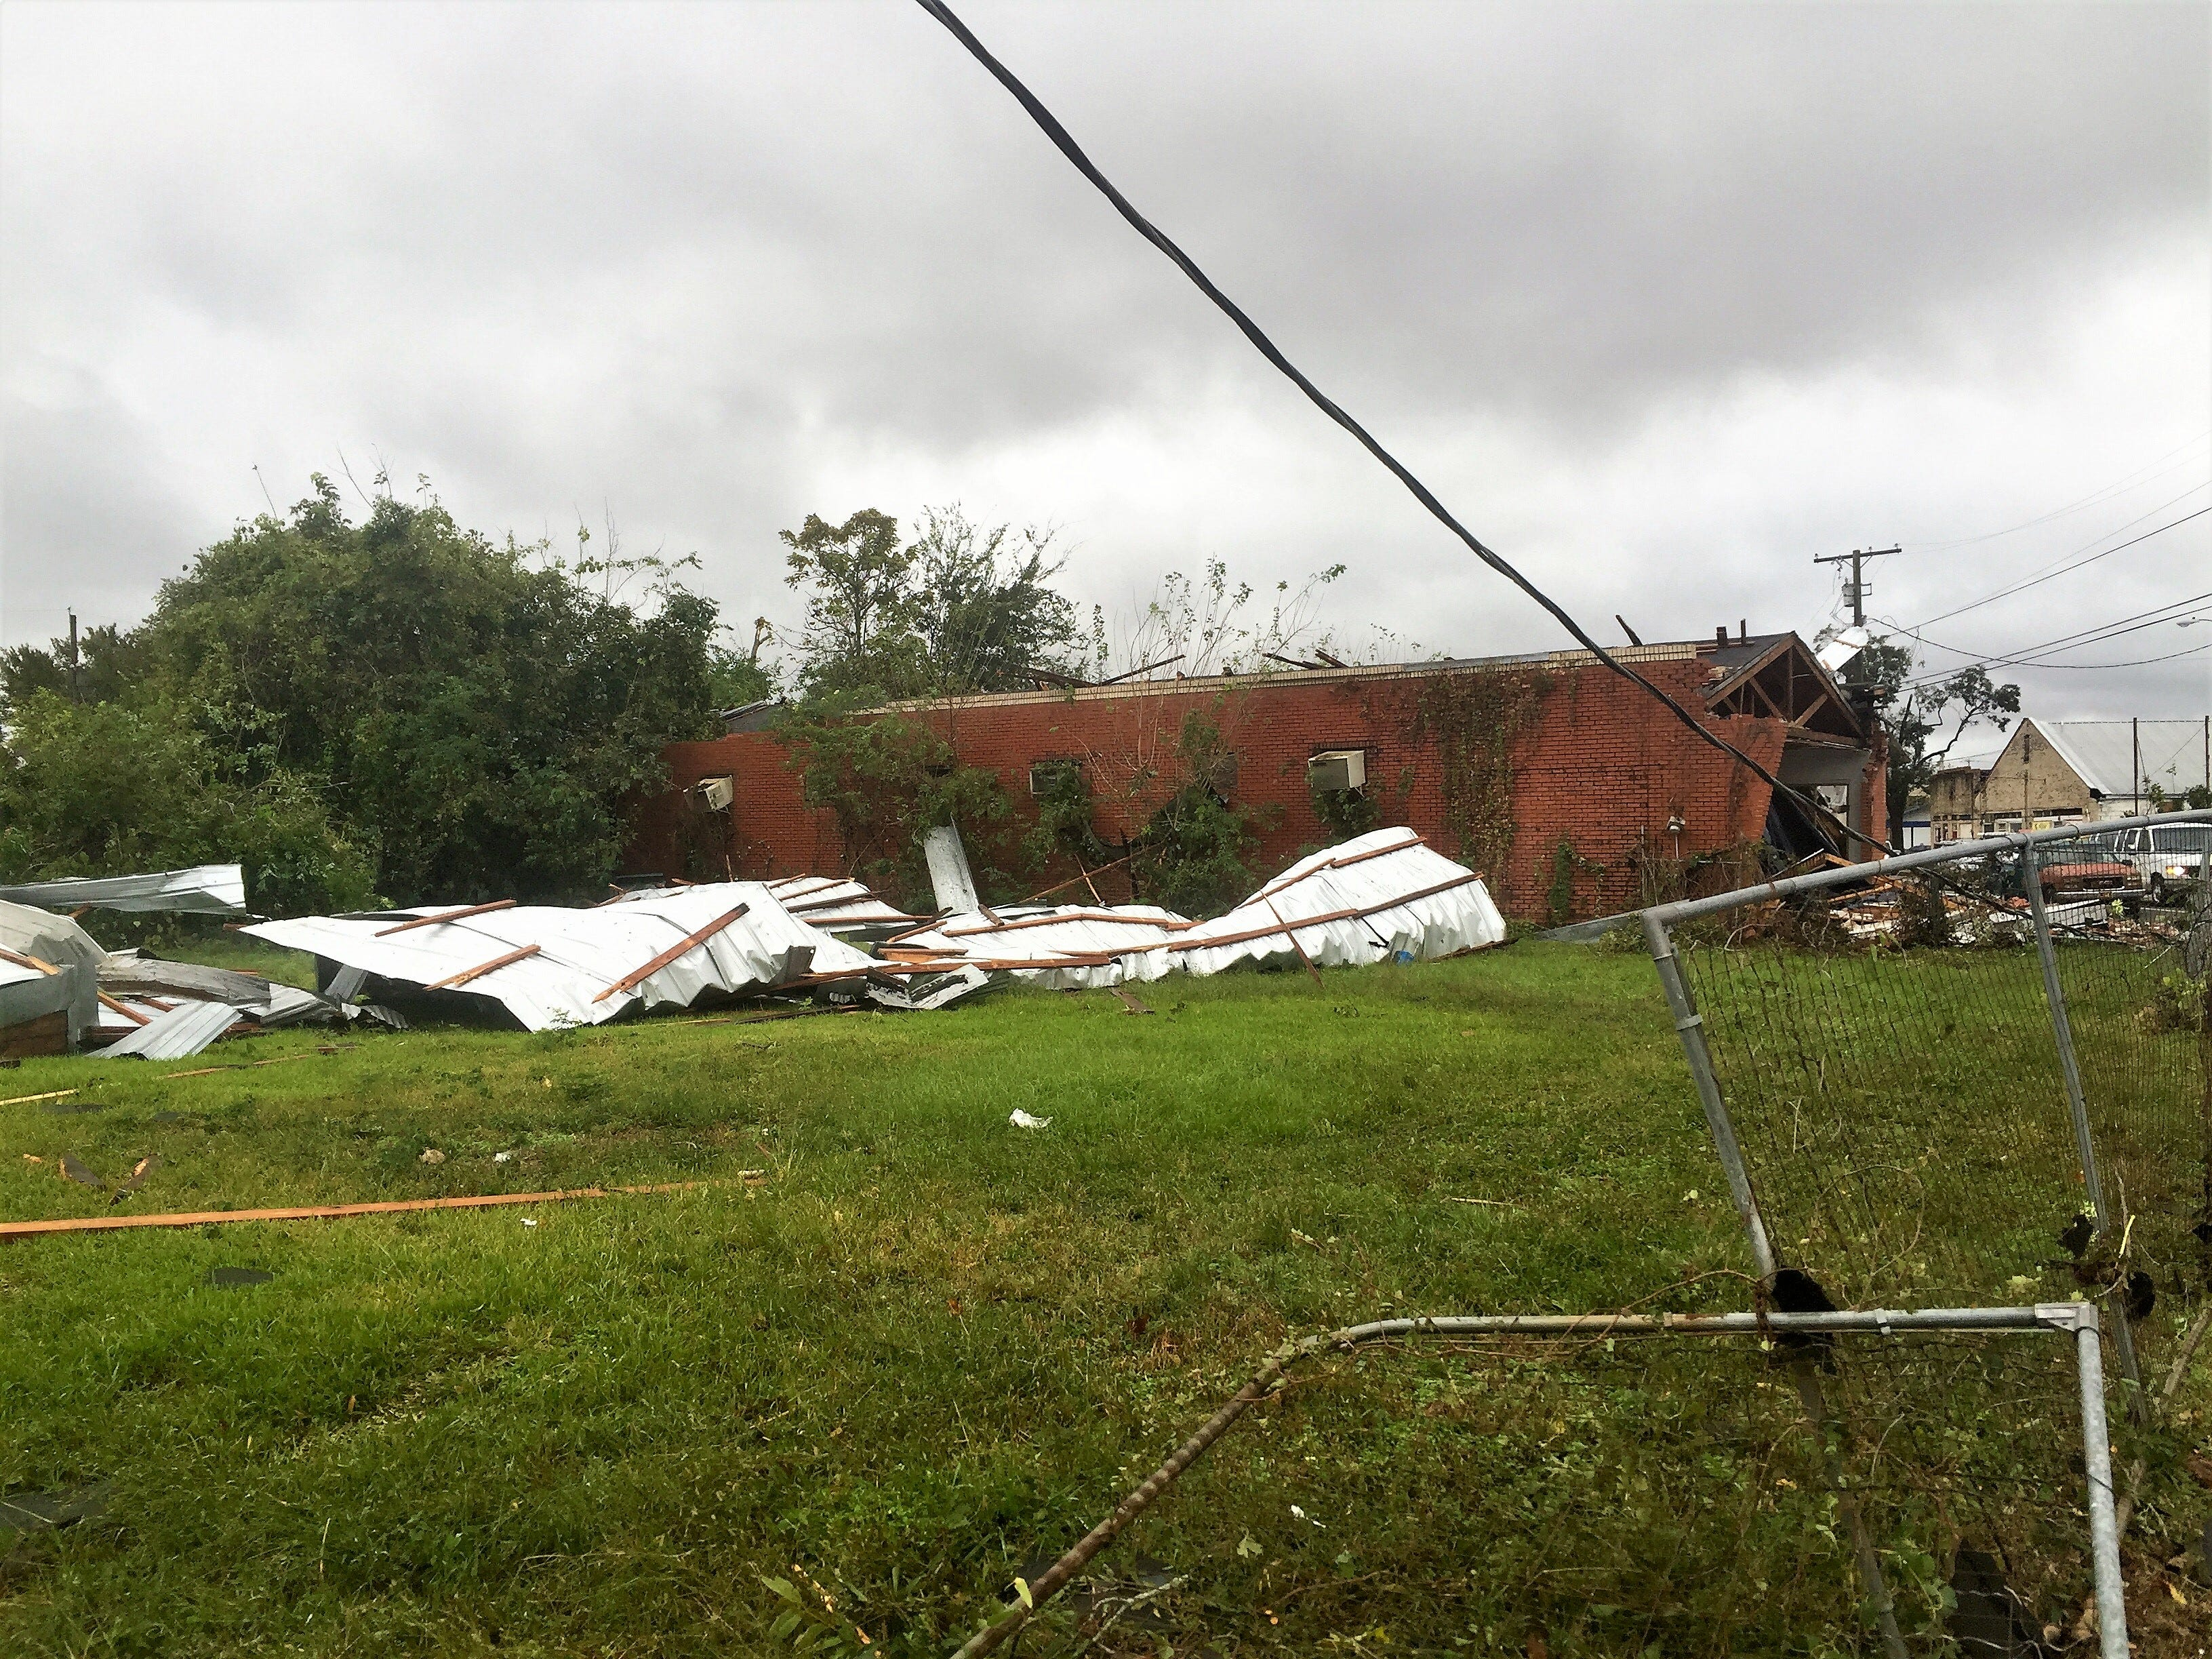 Damage in the Lee Street area from Wednesday night's storms included downed power lines and sections of buildings torn off.